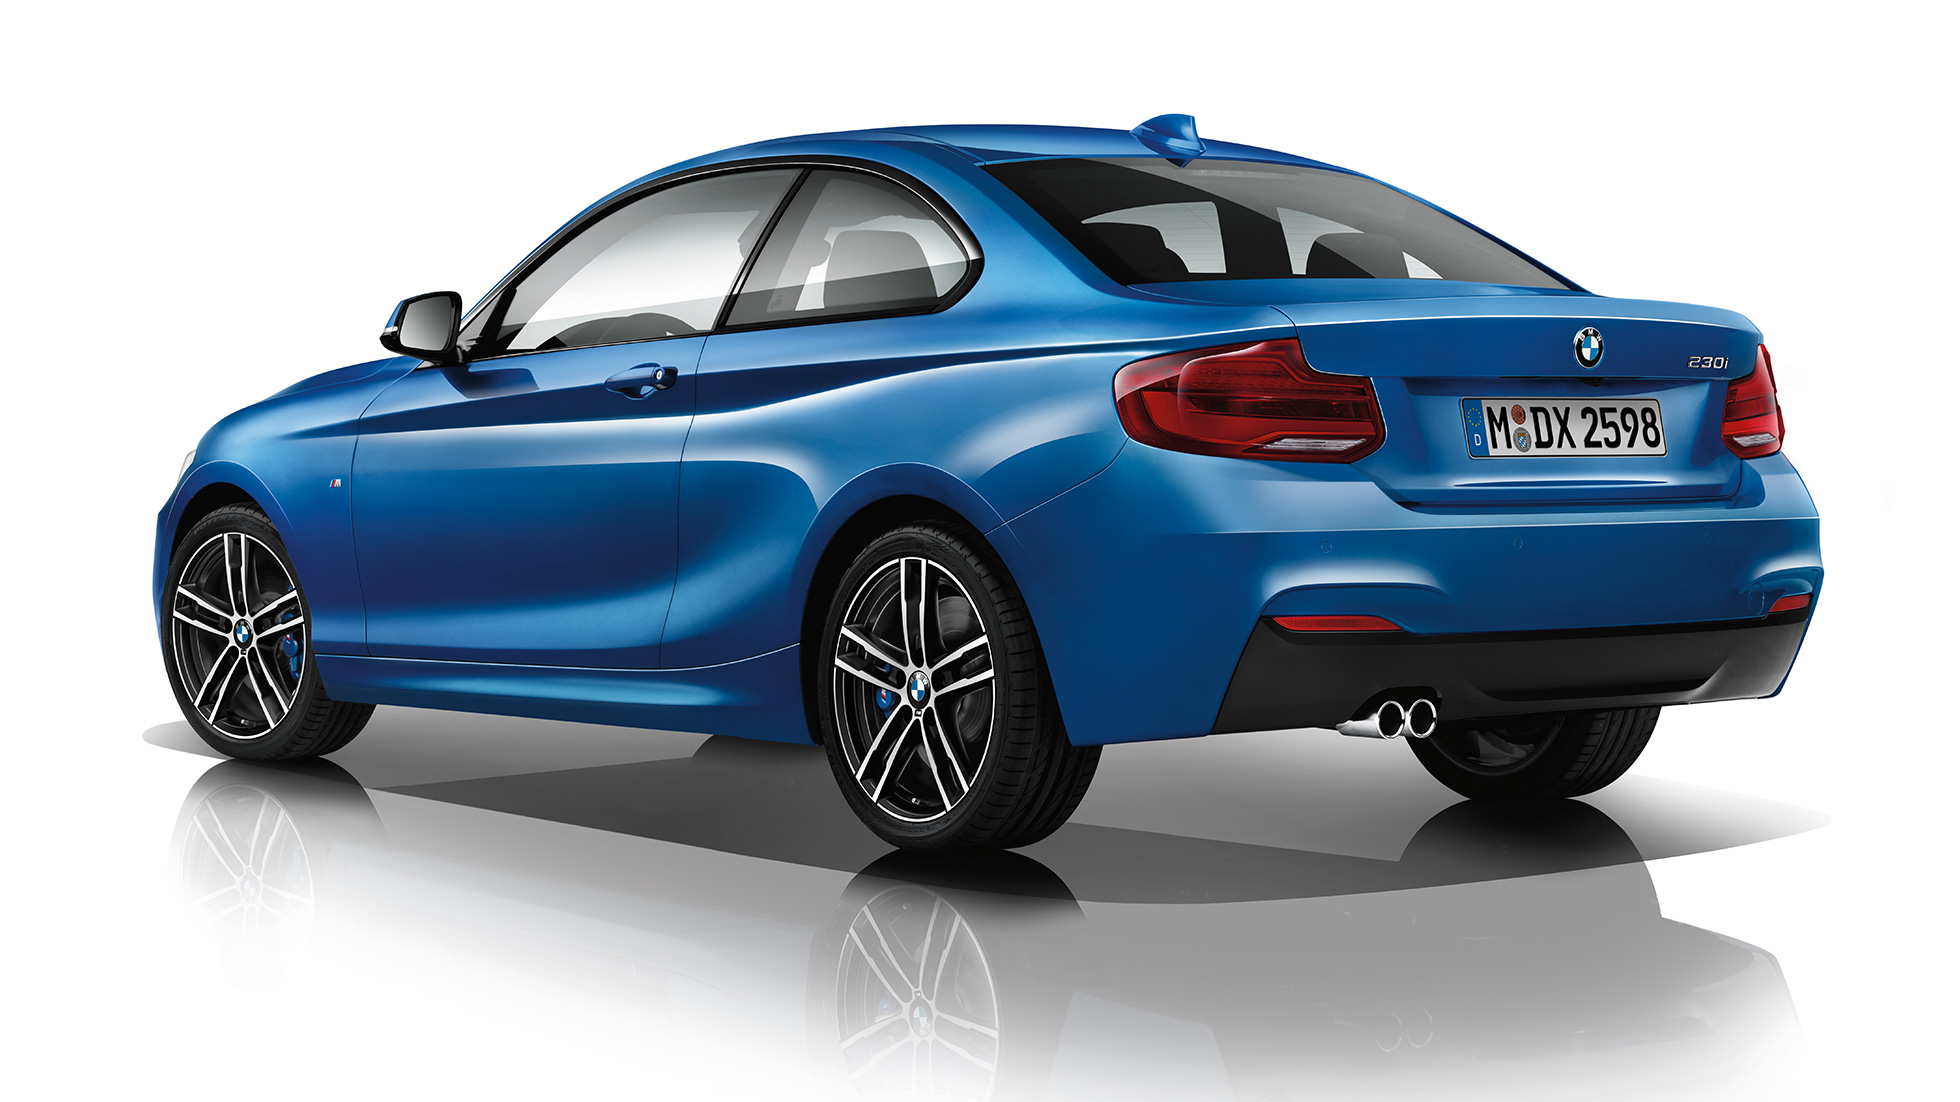 BMW 2-serie Coupé, Model M Sport, set bagfra let drejet